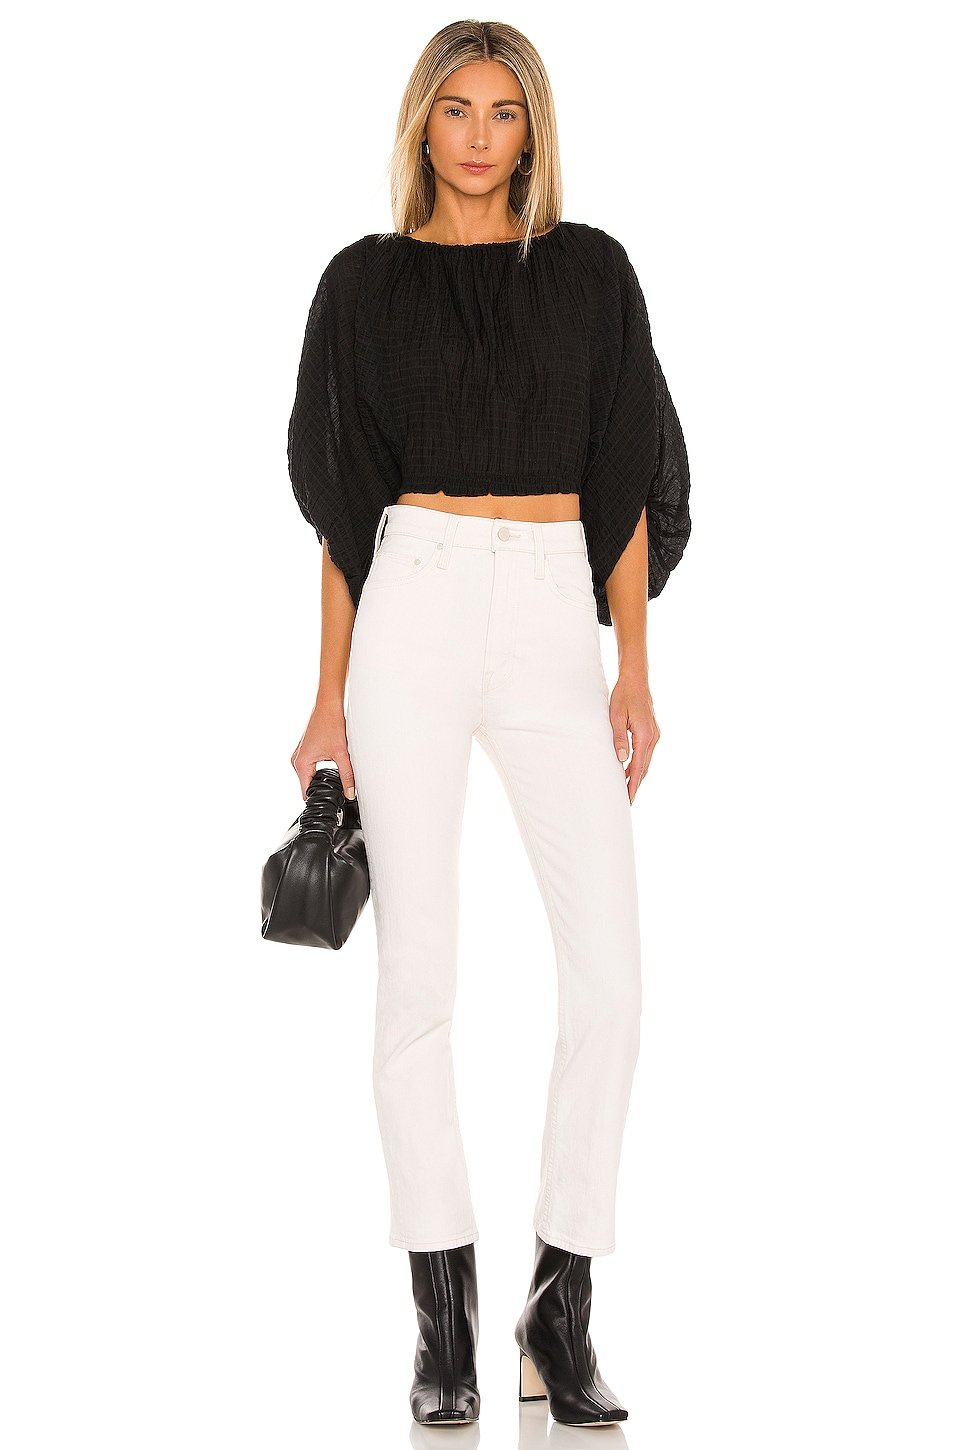 FREE PEOPLE Clothing ALICIA TOP